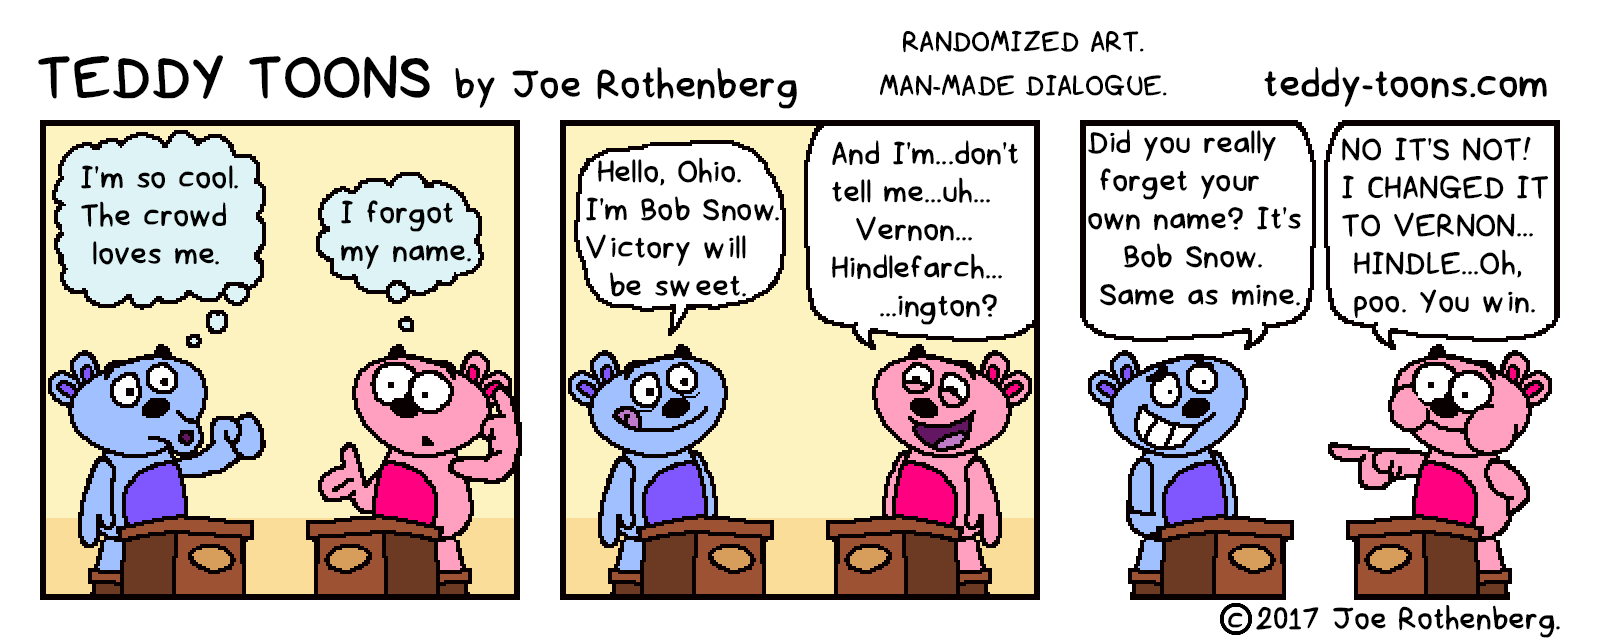 02-03-17.png